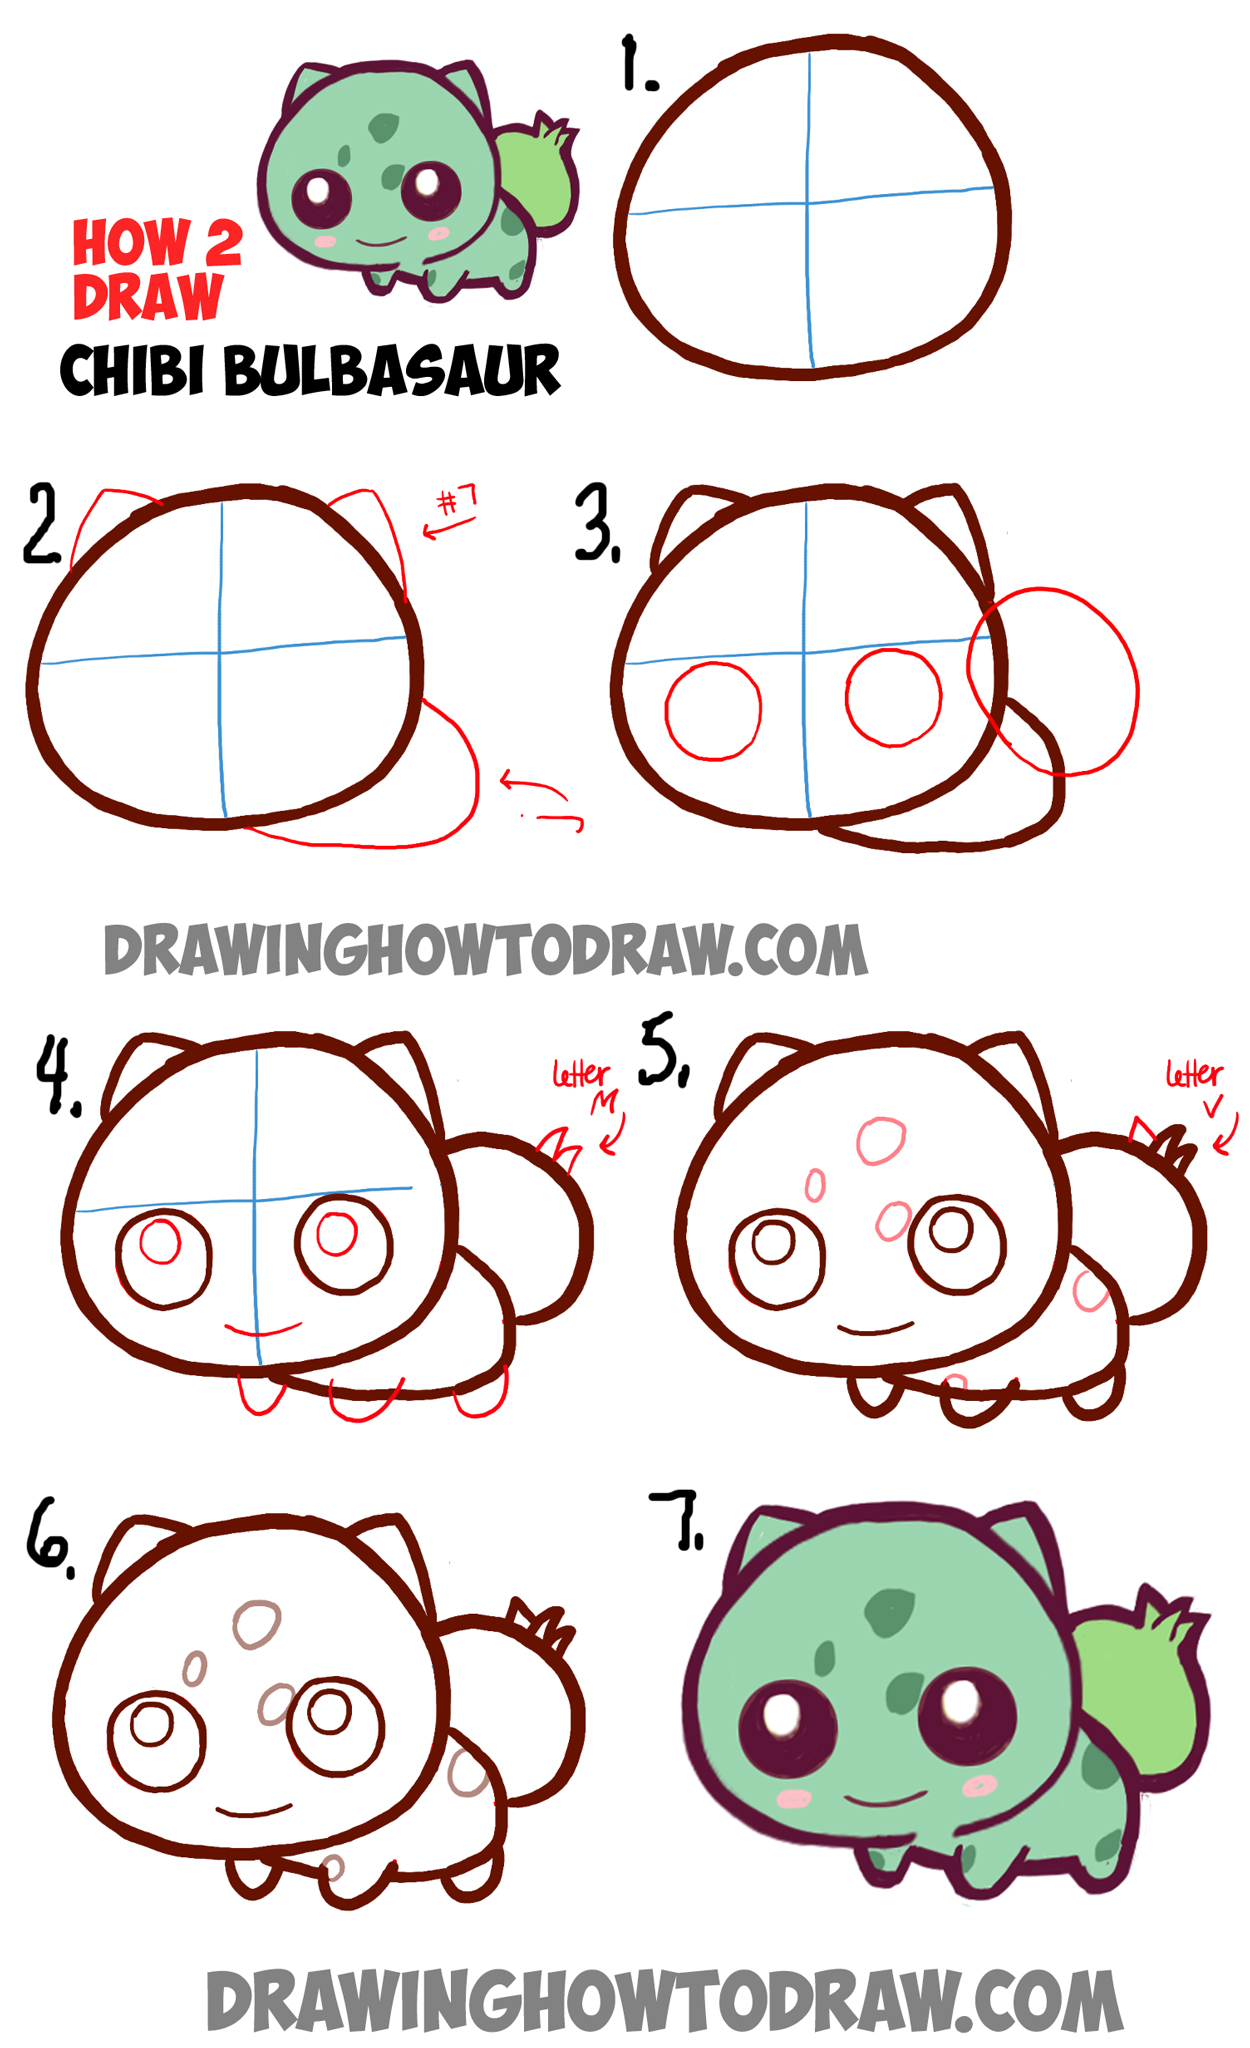 Learn How to Draw Cute Baby Chibi Bulbasaur from Pokemon in Simple Step by Step Drawing Tutorial